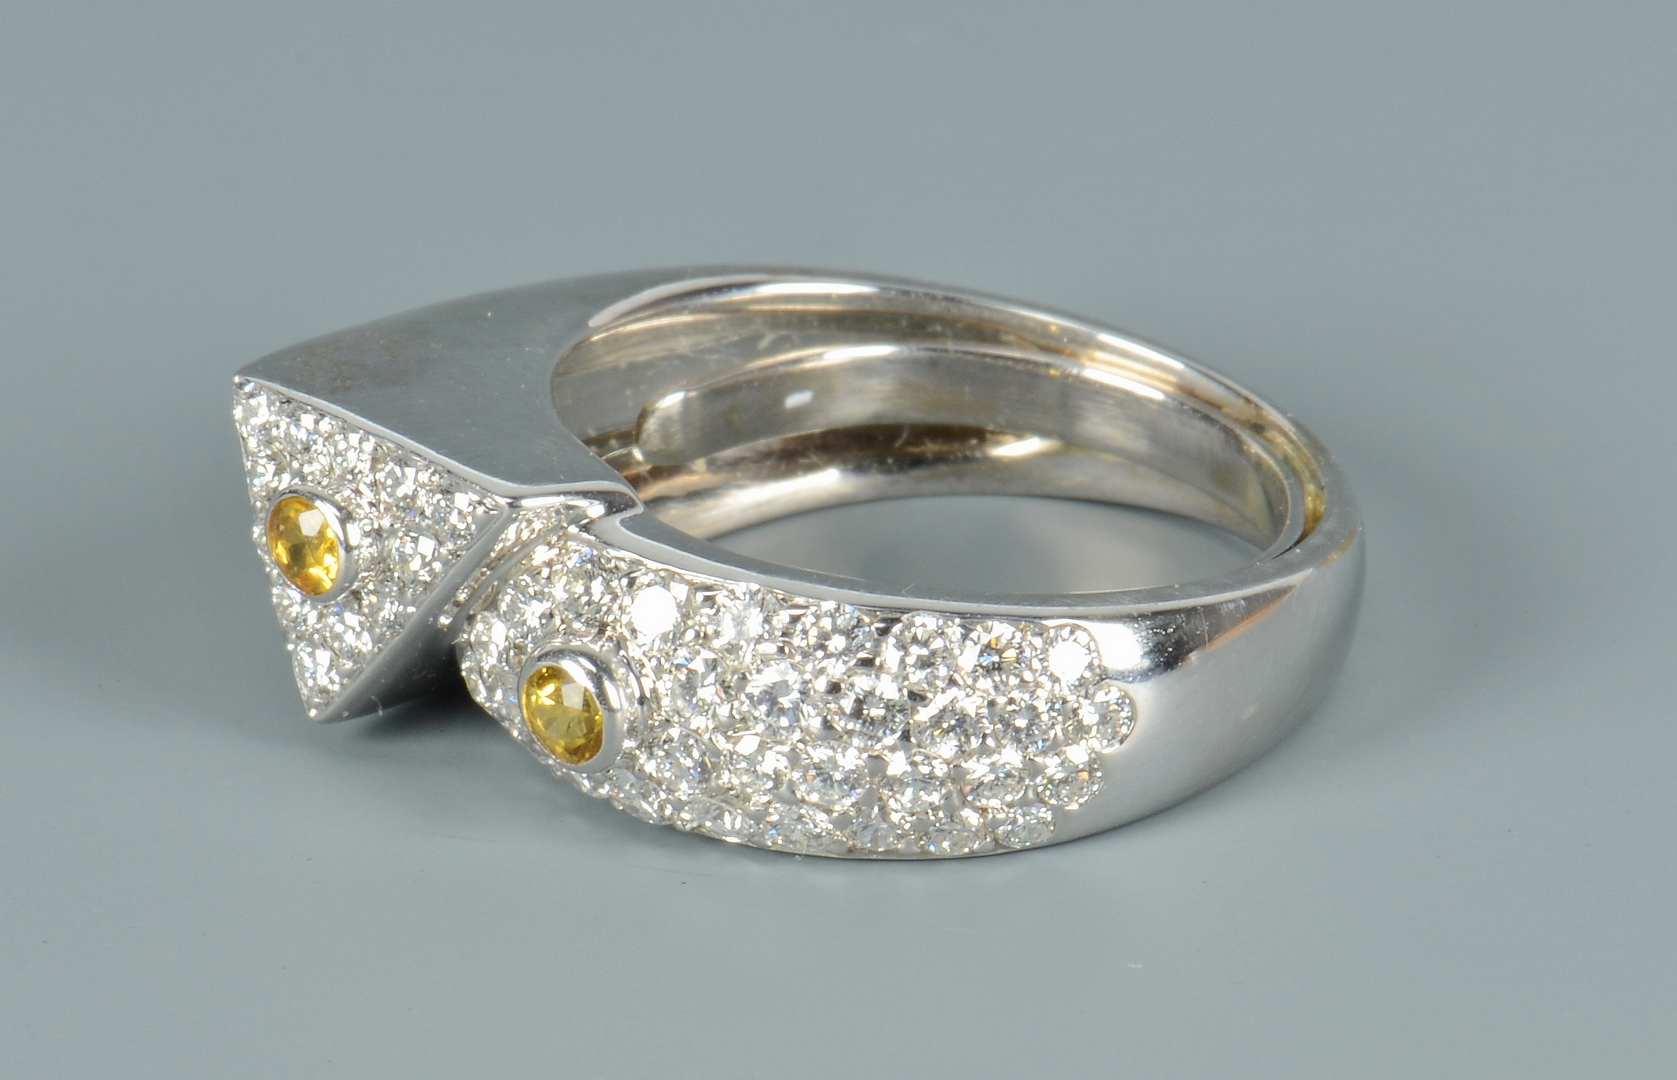 Lot 3088052: Contemporary Plat Dia Yellow Sapphire Ring